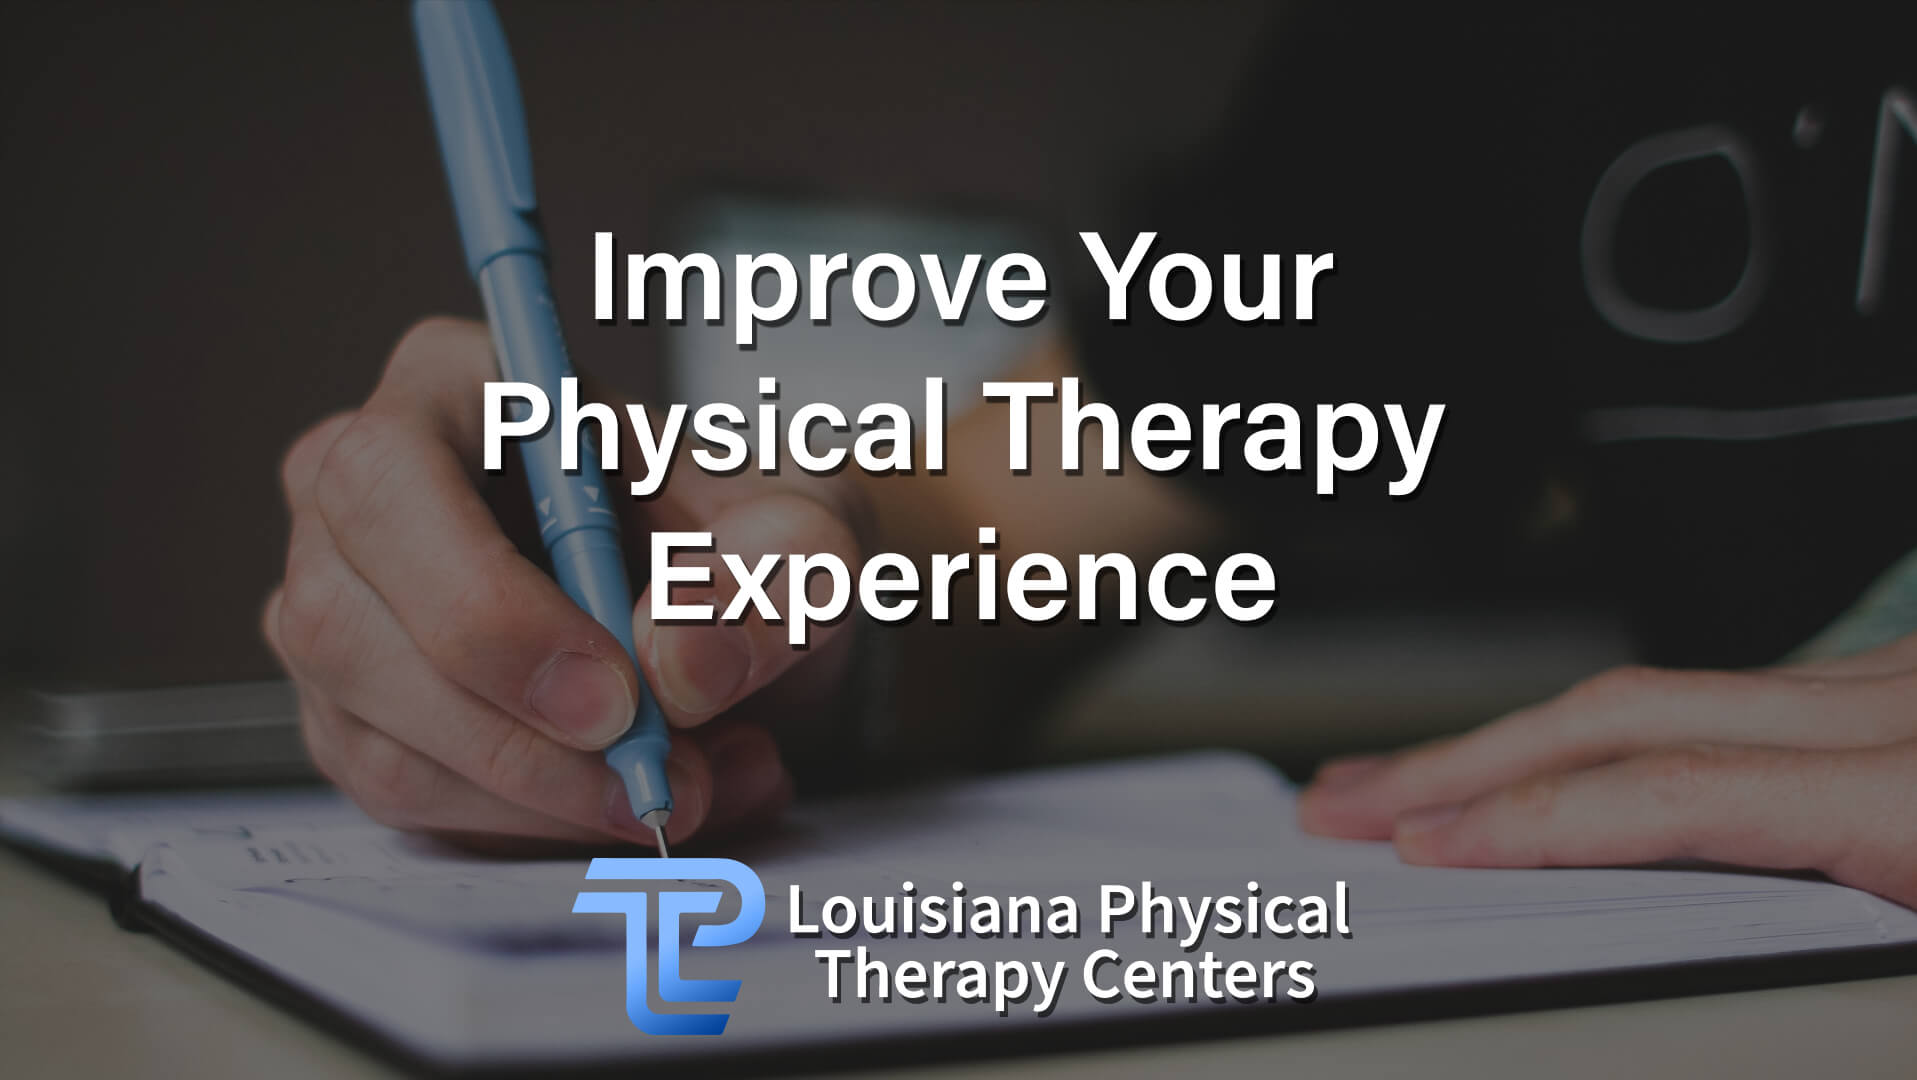 Improve Your Physical Therapy Experience